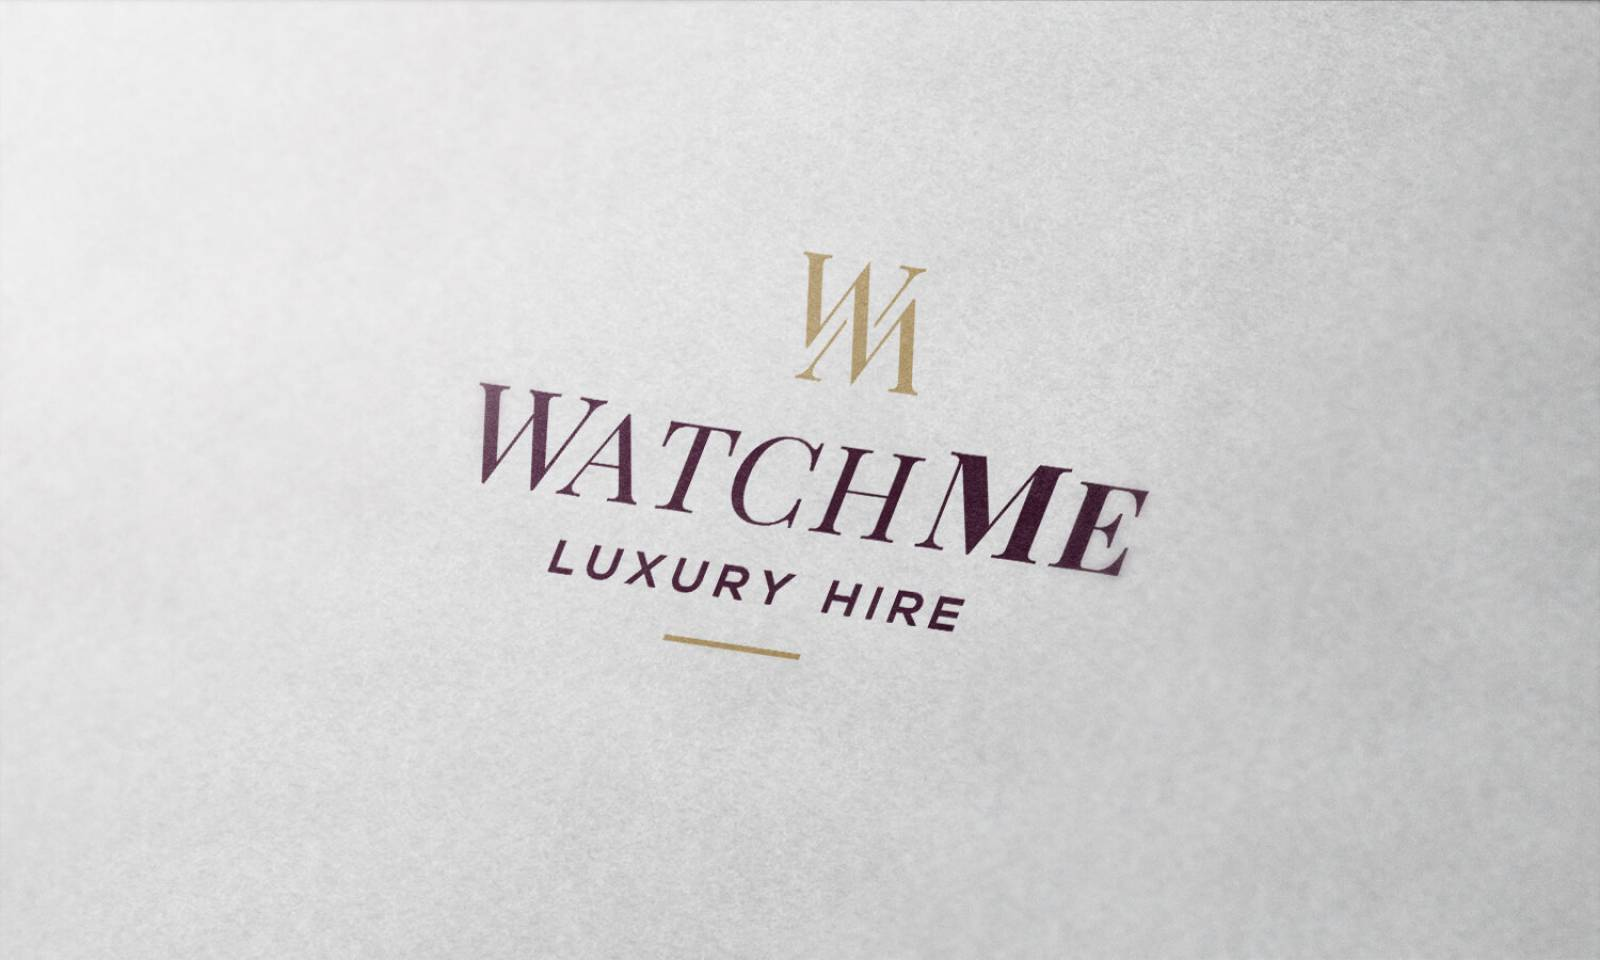 Watchme-logo-2-corporate-identity-agency-graphic-design-canterbury.jpg